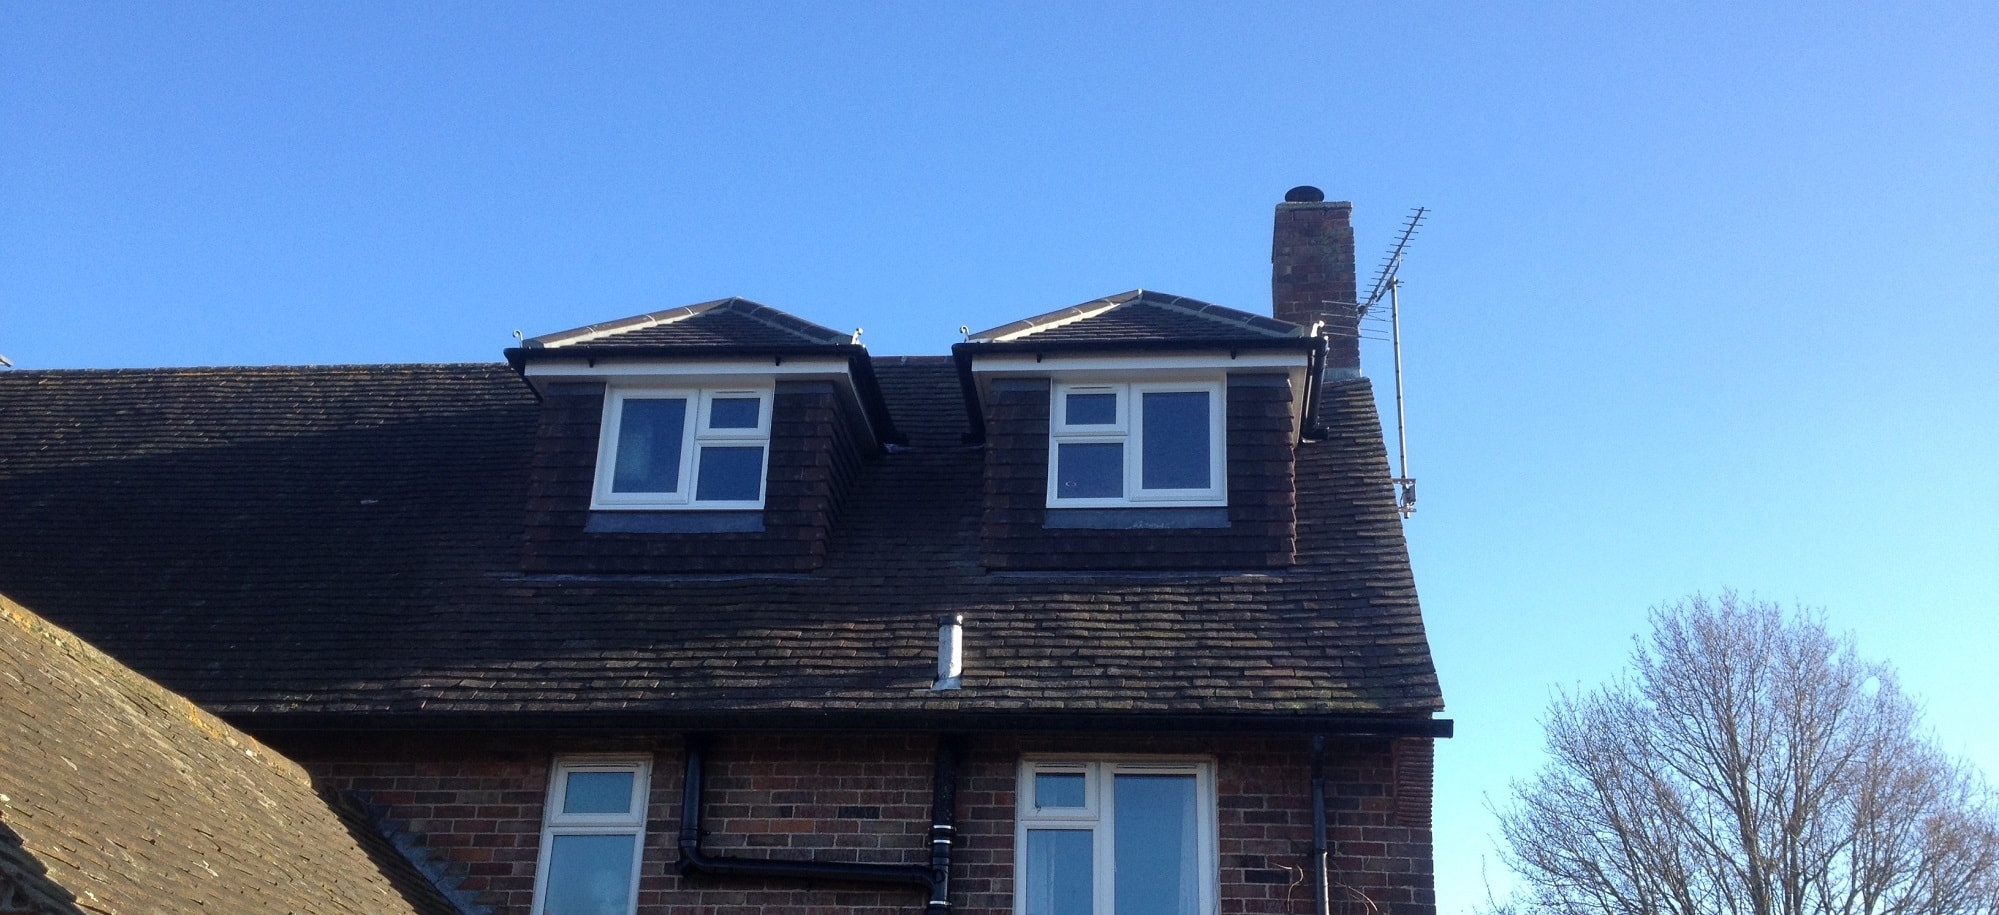 A semi detached house loft conversion with 2 pitch roof dormers to rear elevation, 1 bedroom with en-suite shower room.